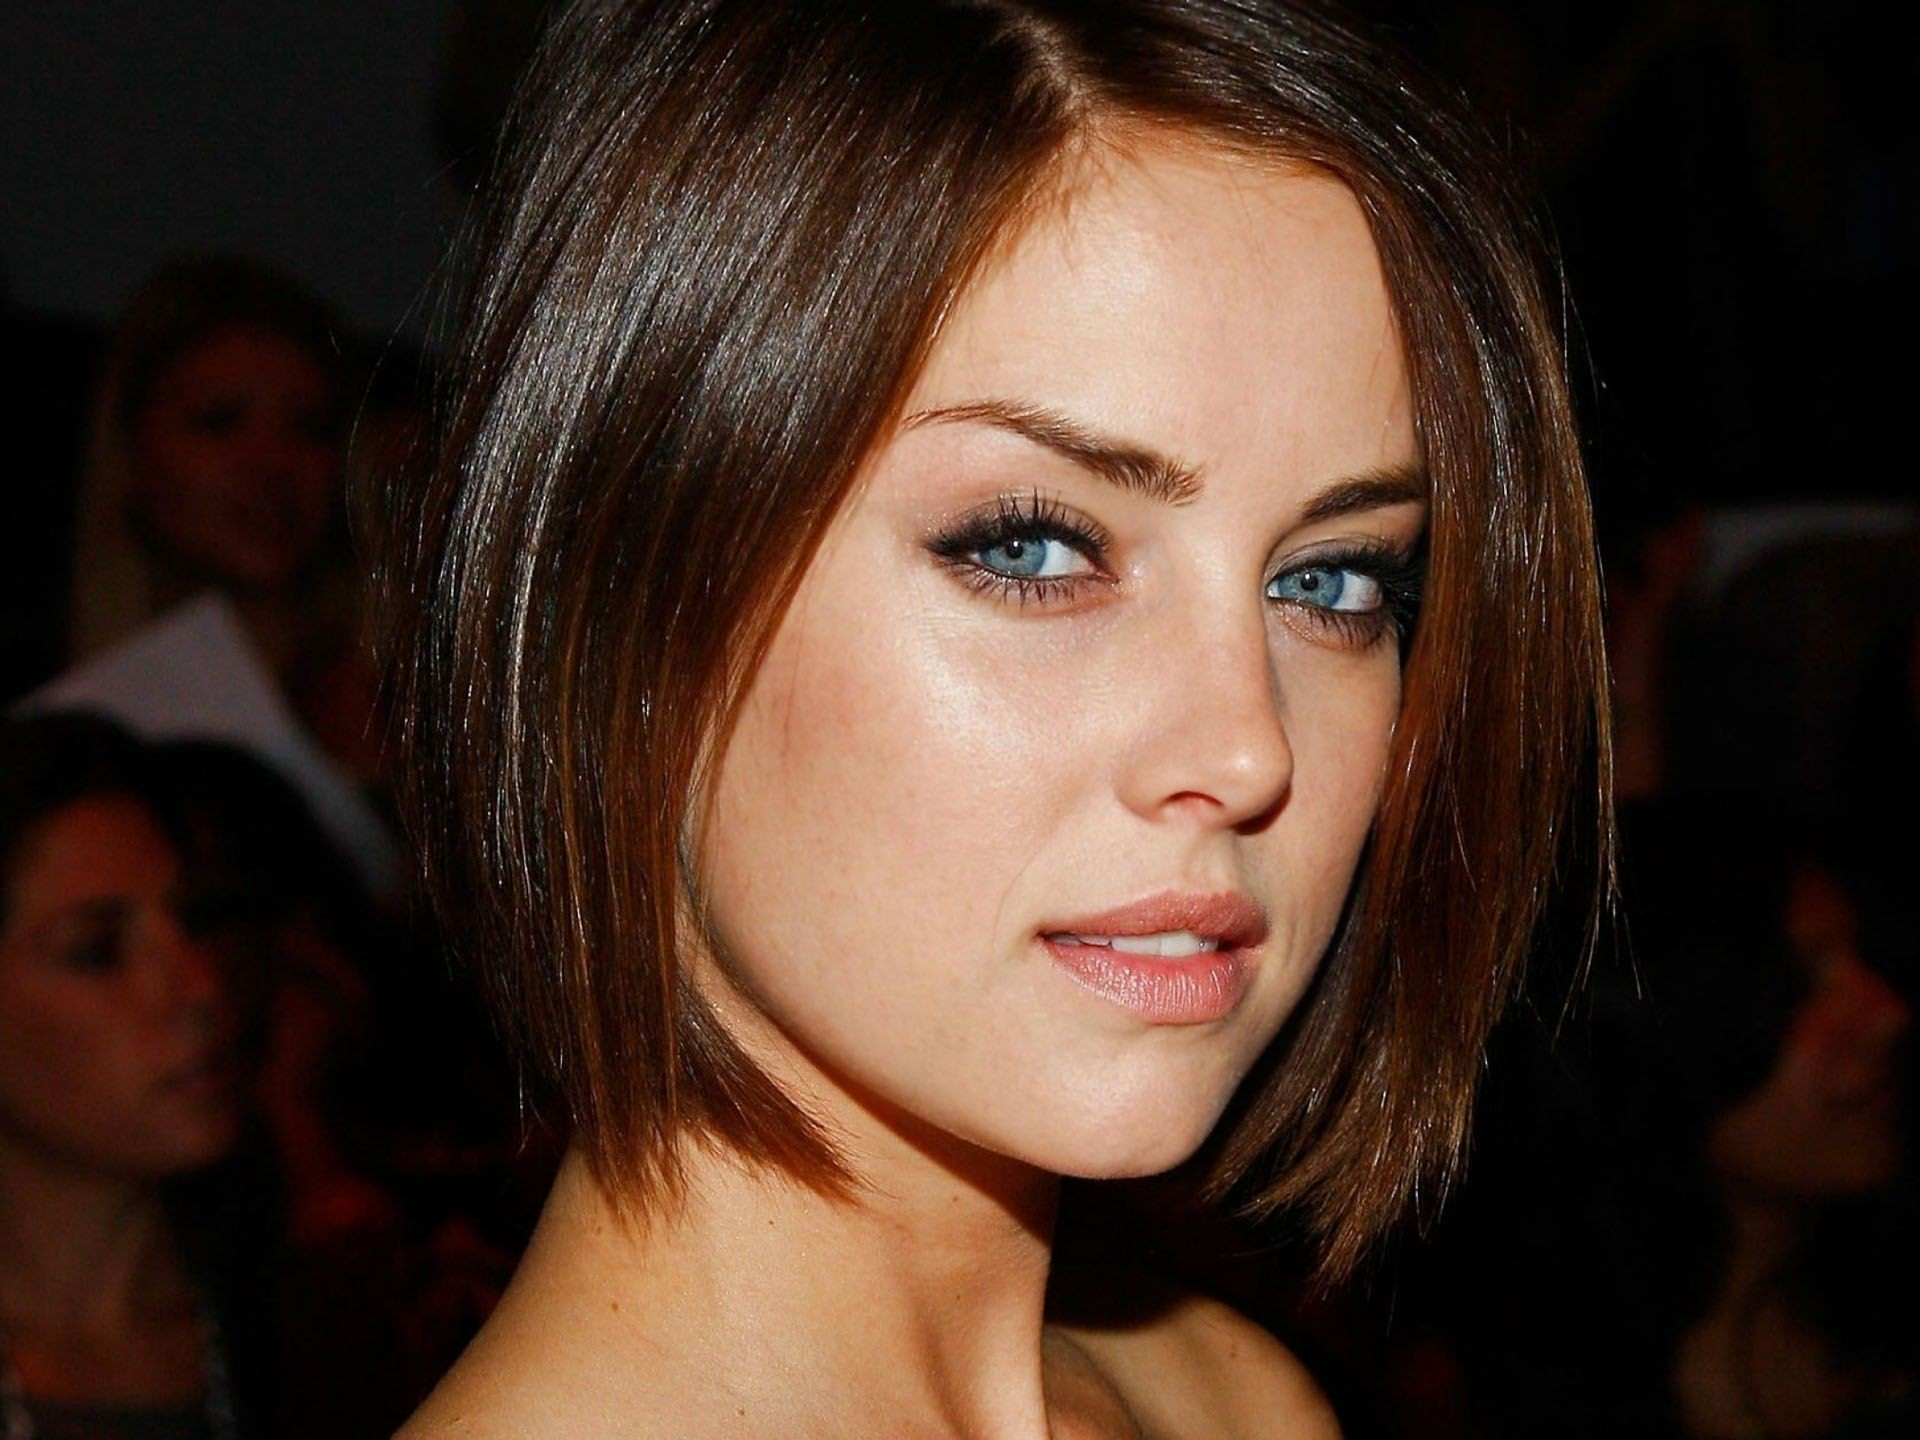 1920x1440 - Jessica Stroup Wallpapers 13